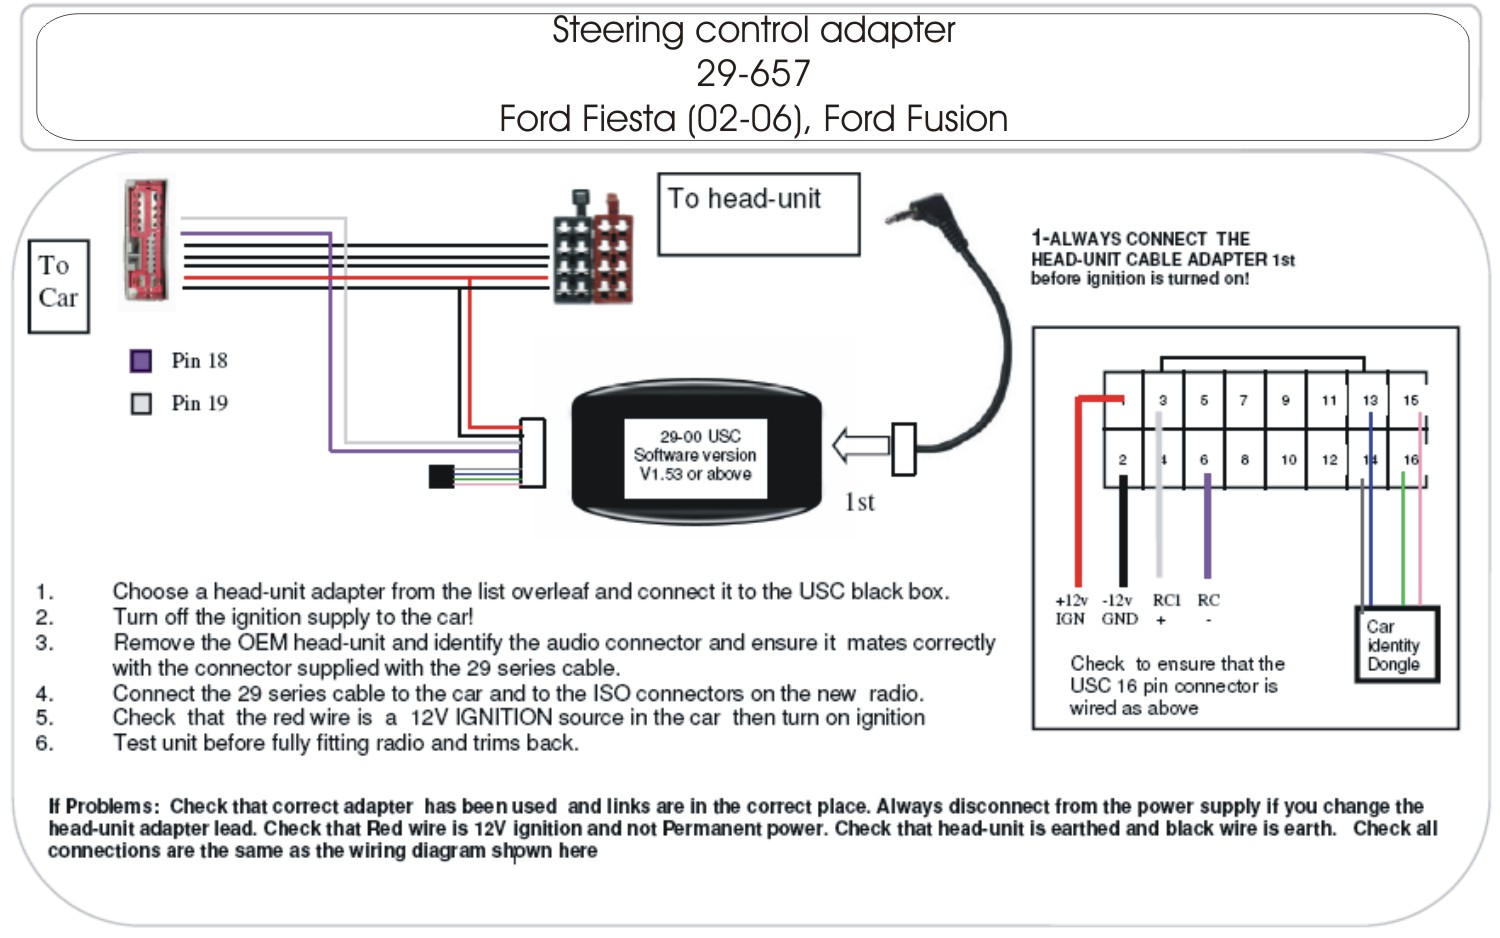 1999 Cadillac Sts Fuse Box Schematics Wiring Diagram 06 Mustang U2022 For Free Chrysler Lhs